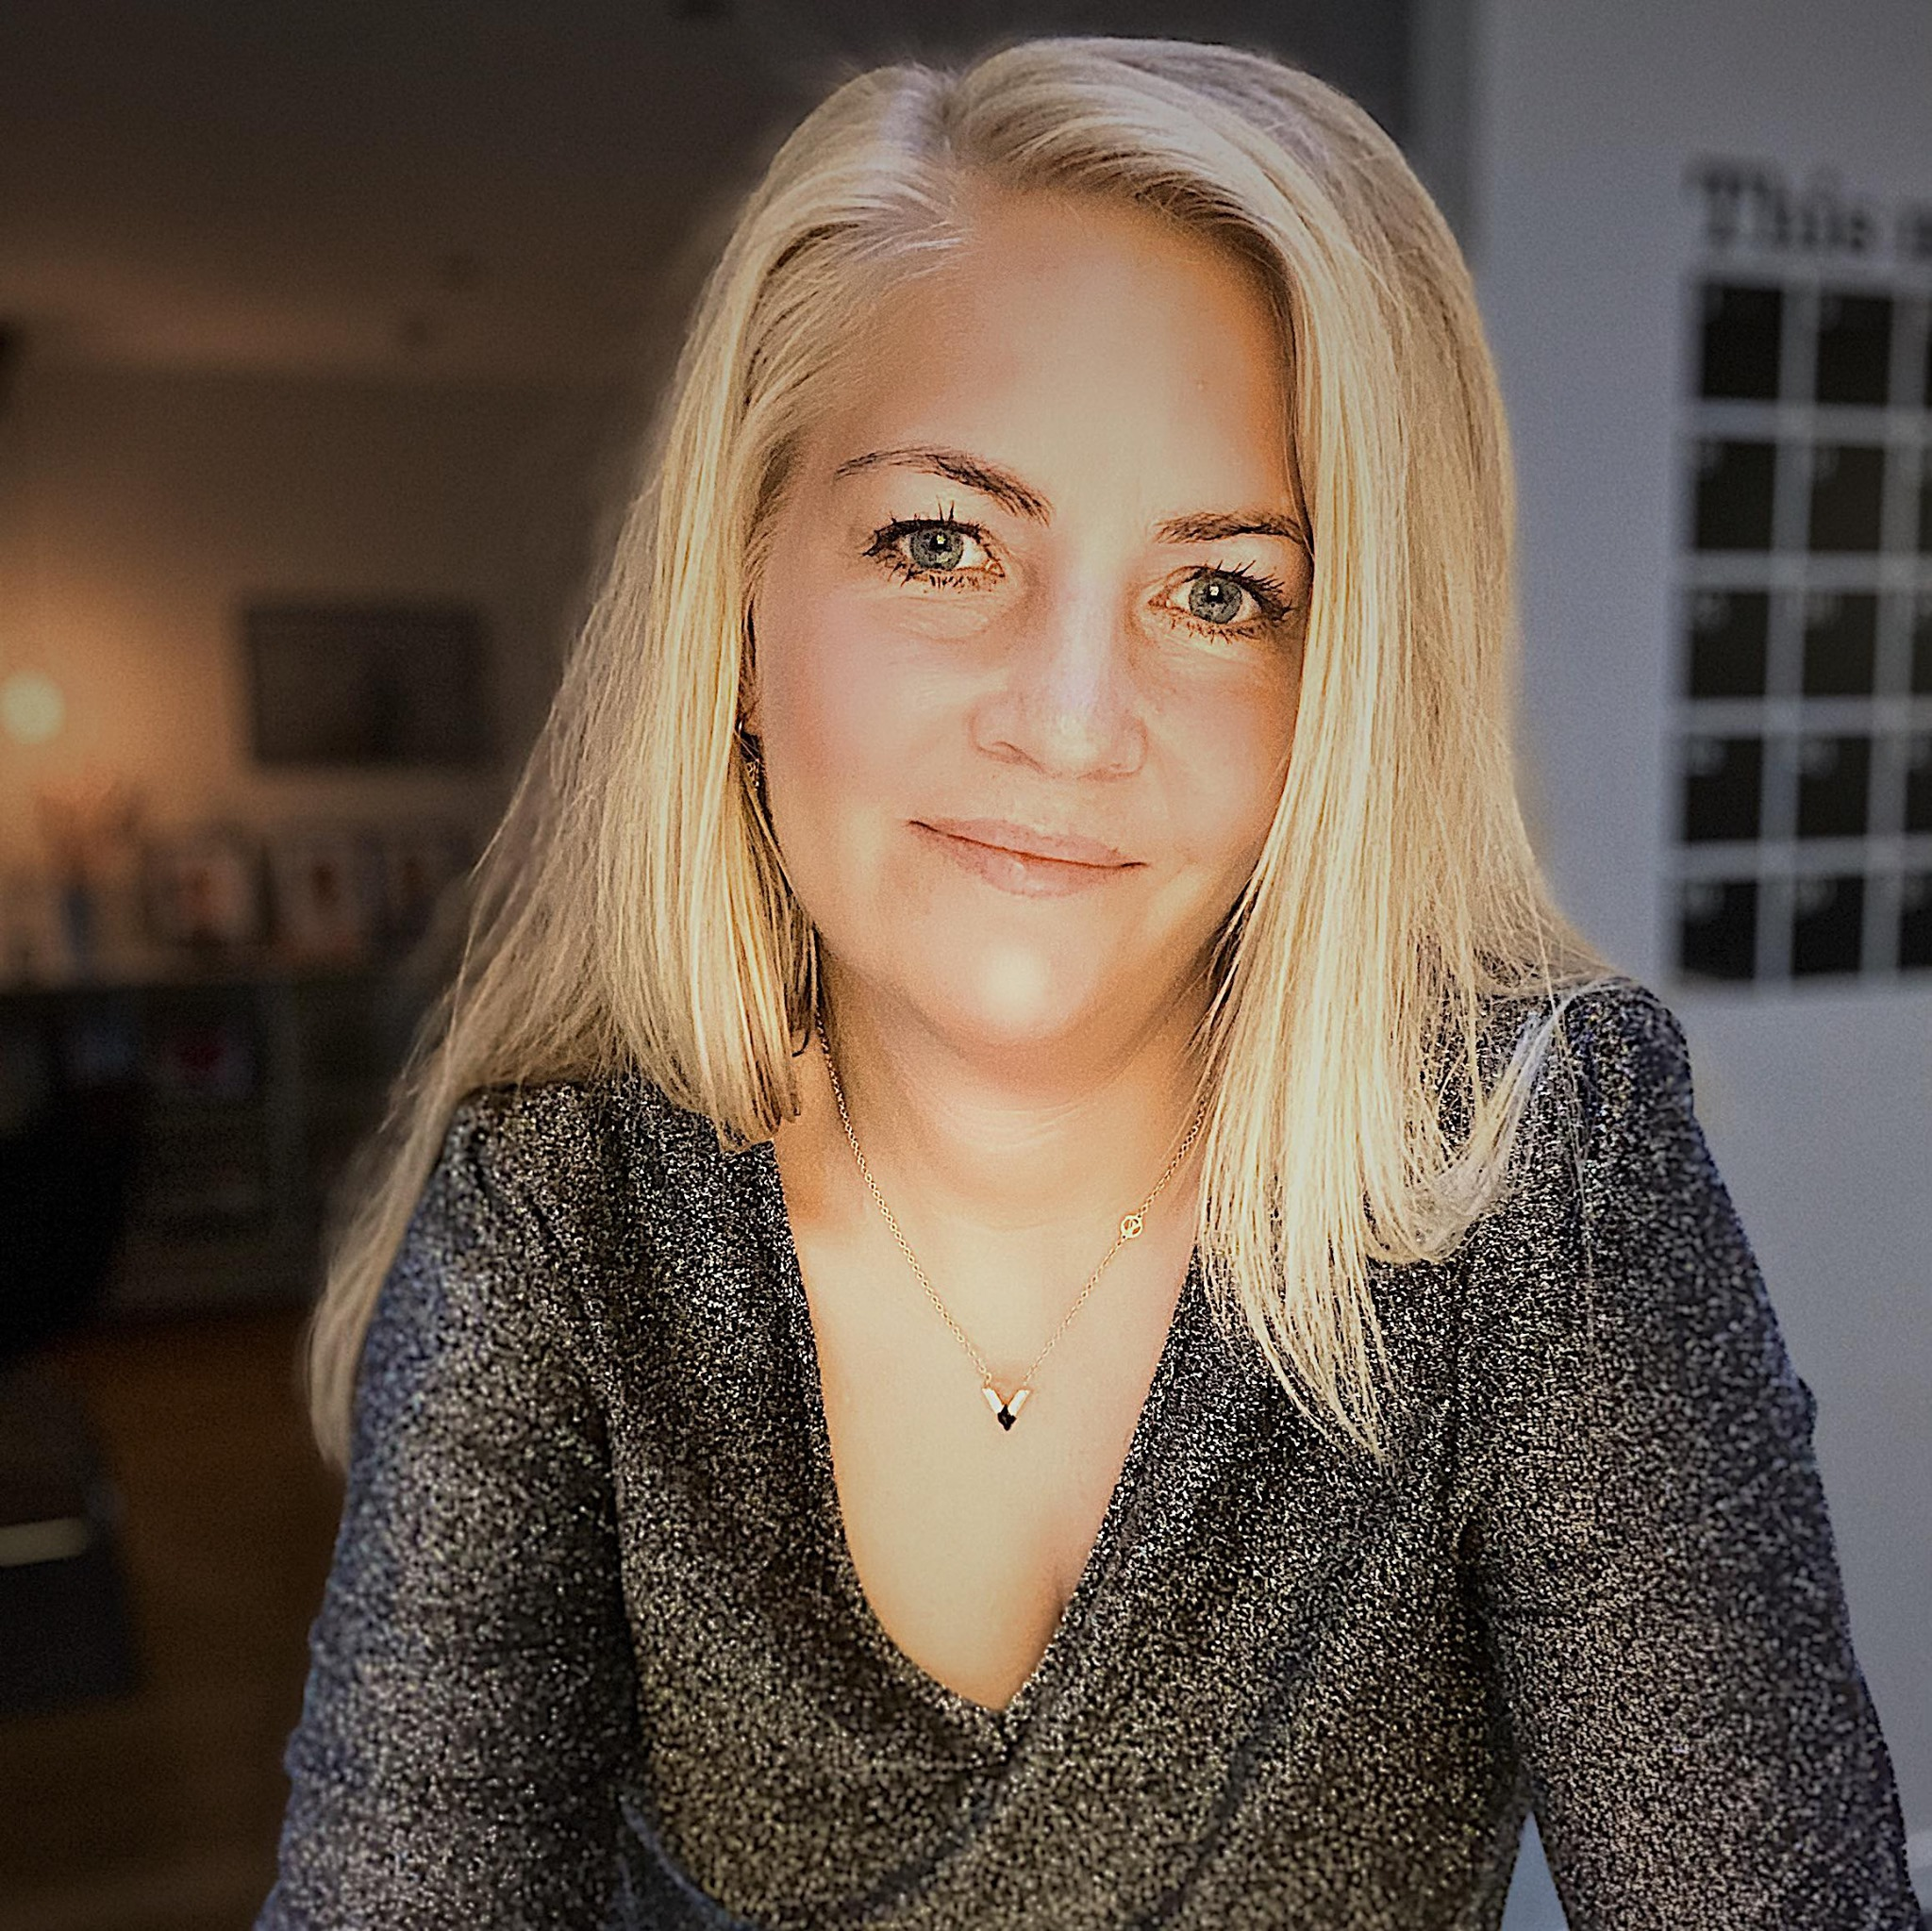 Pernille Friis